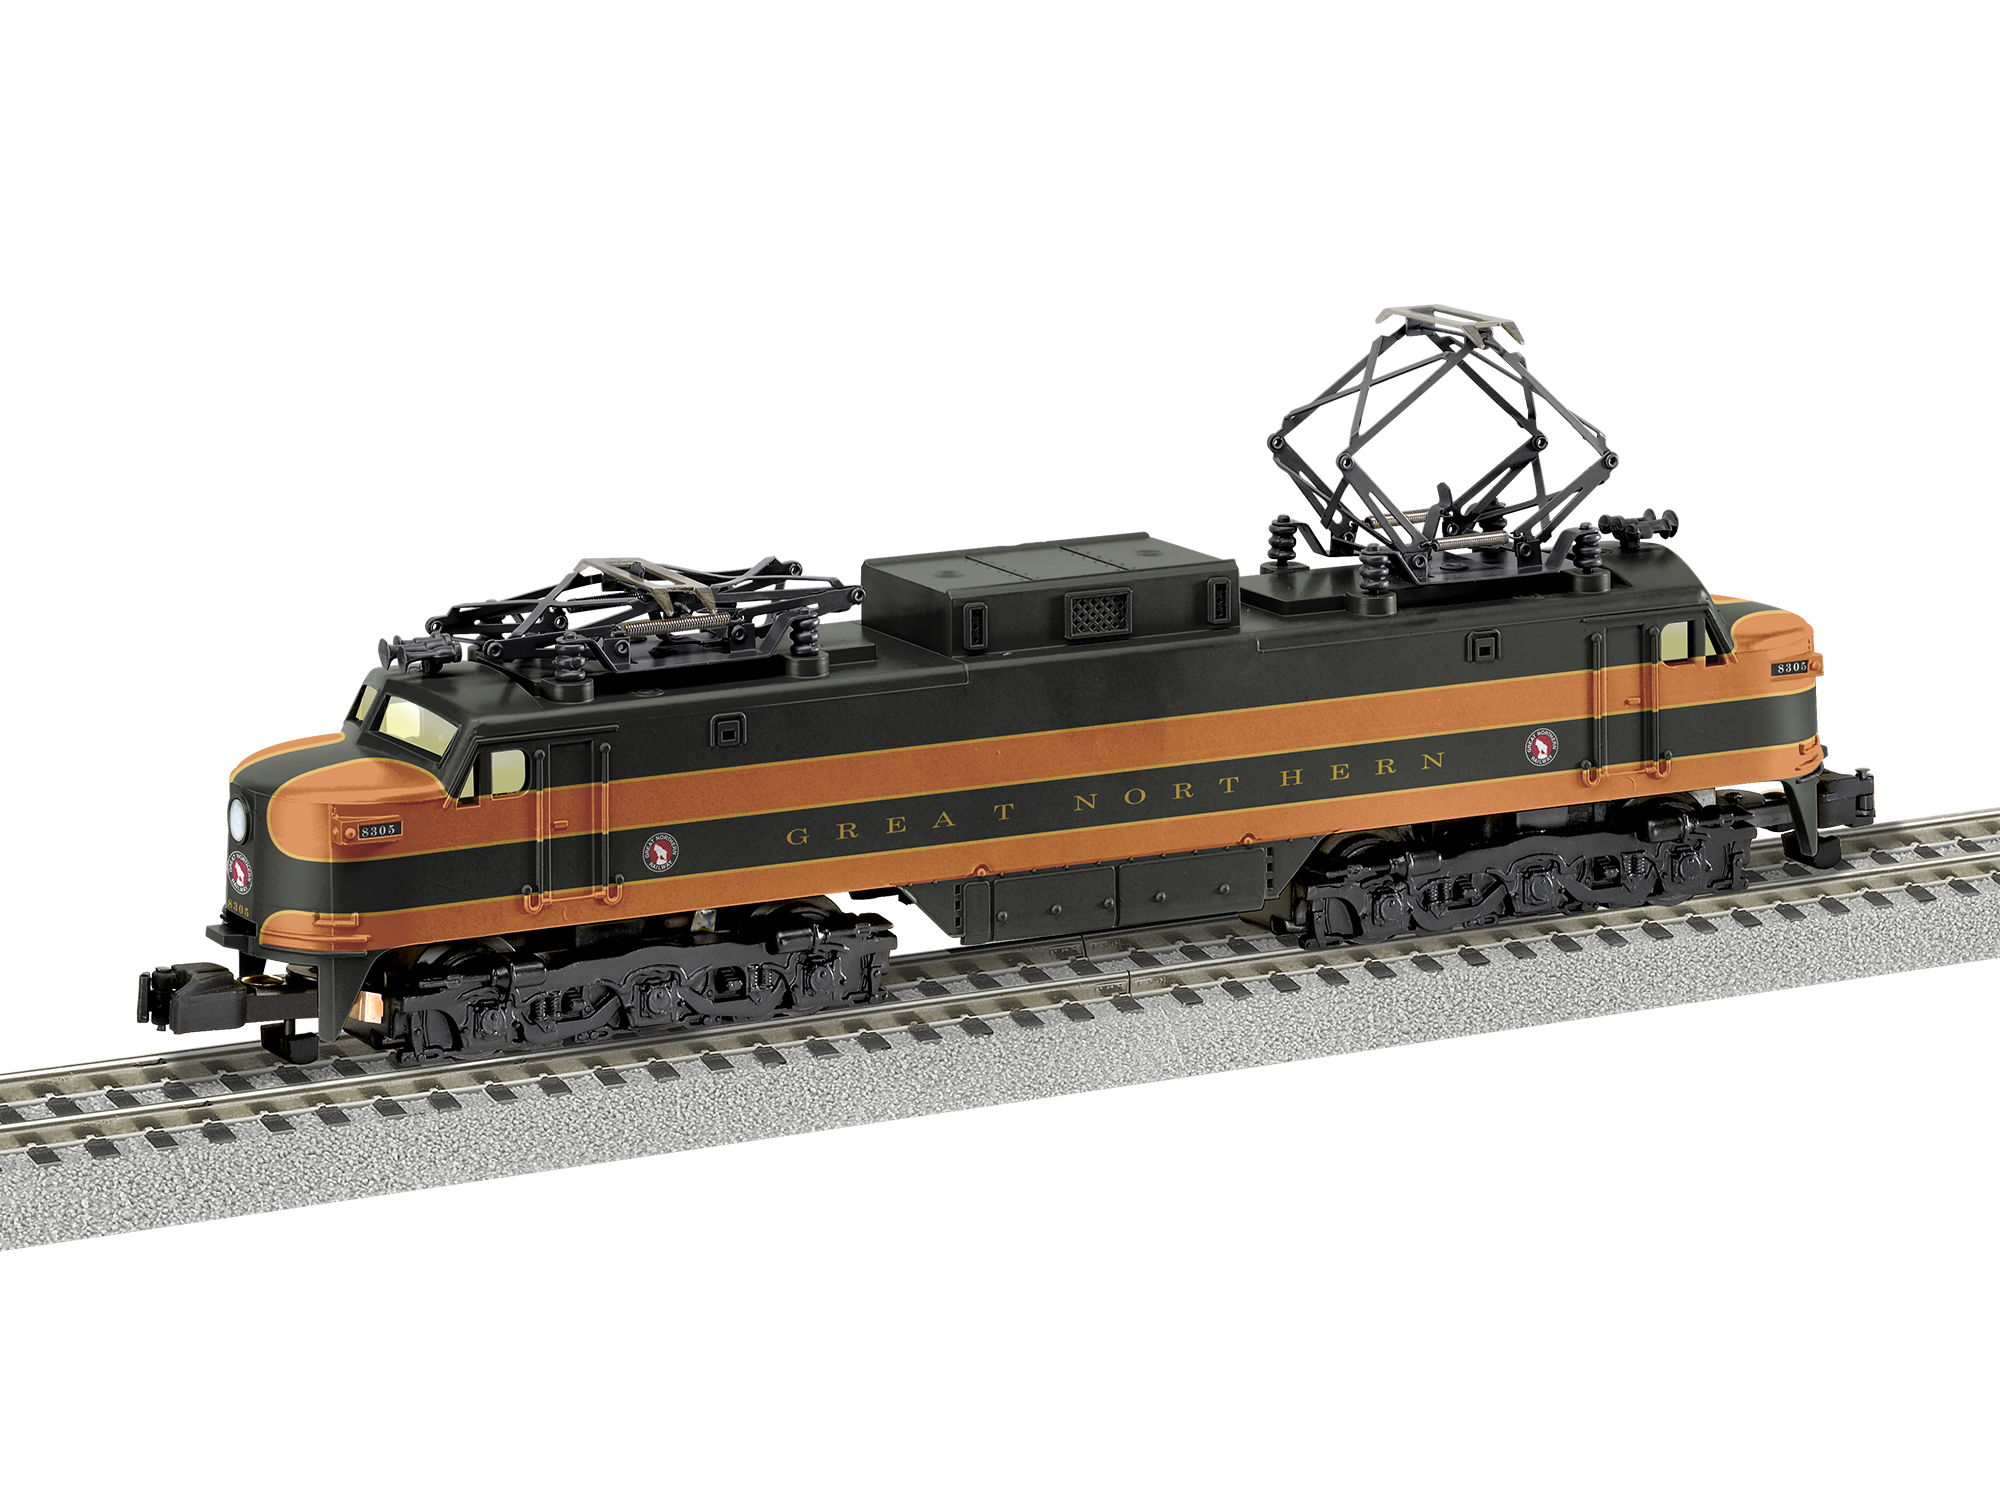 Lionel 2021030 S EP5 Great Northern #8305